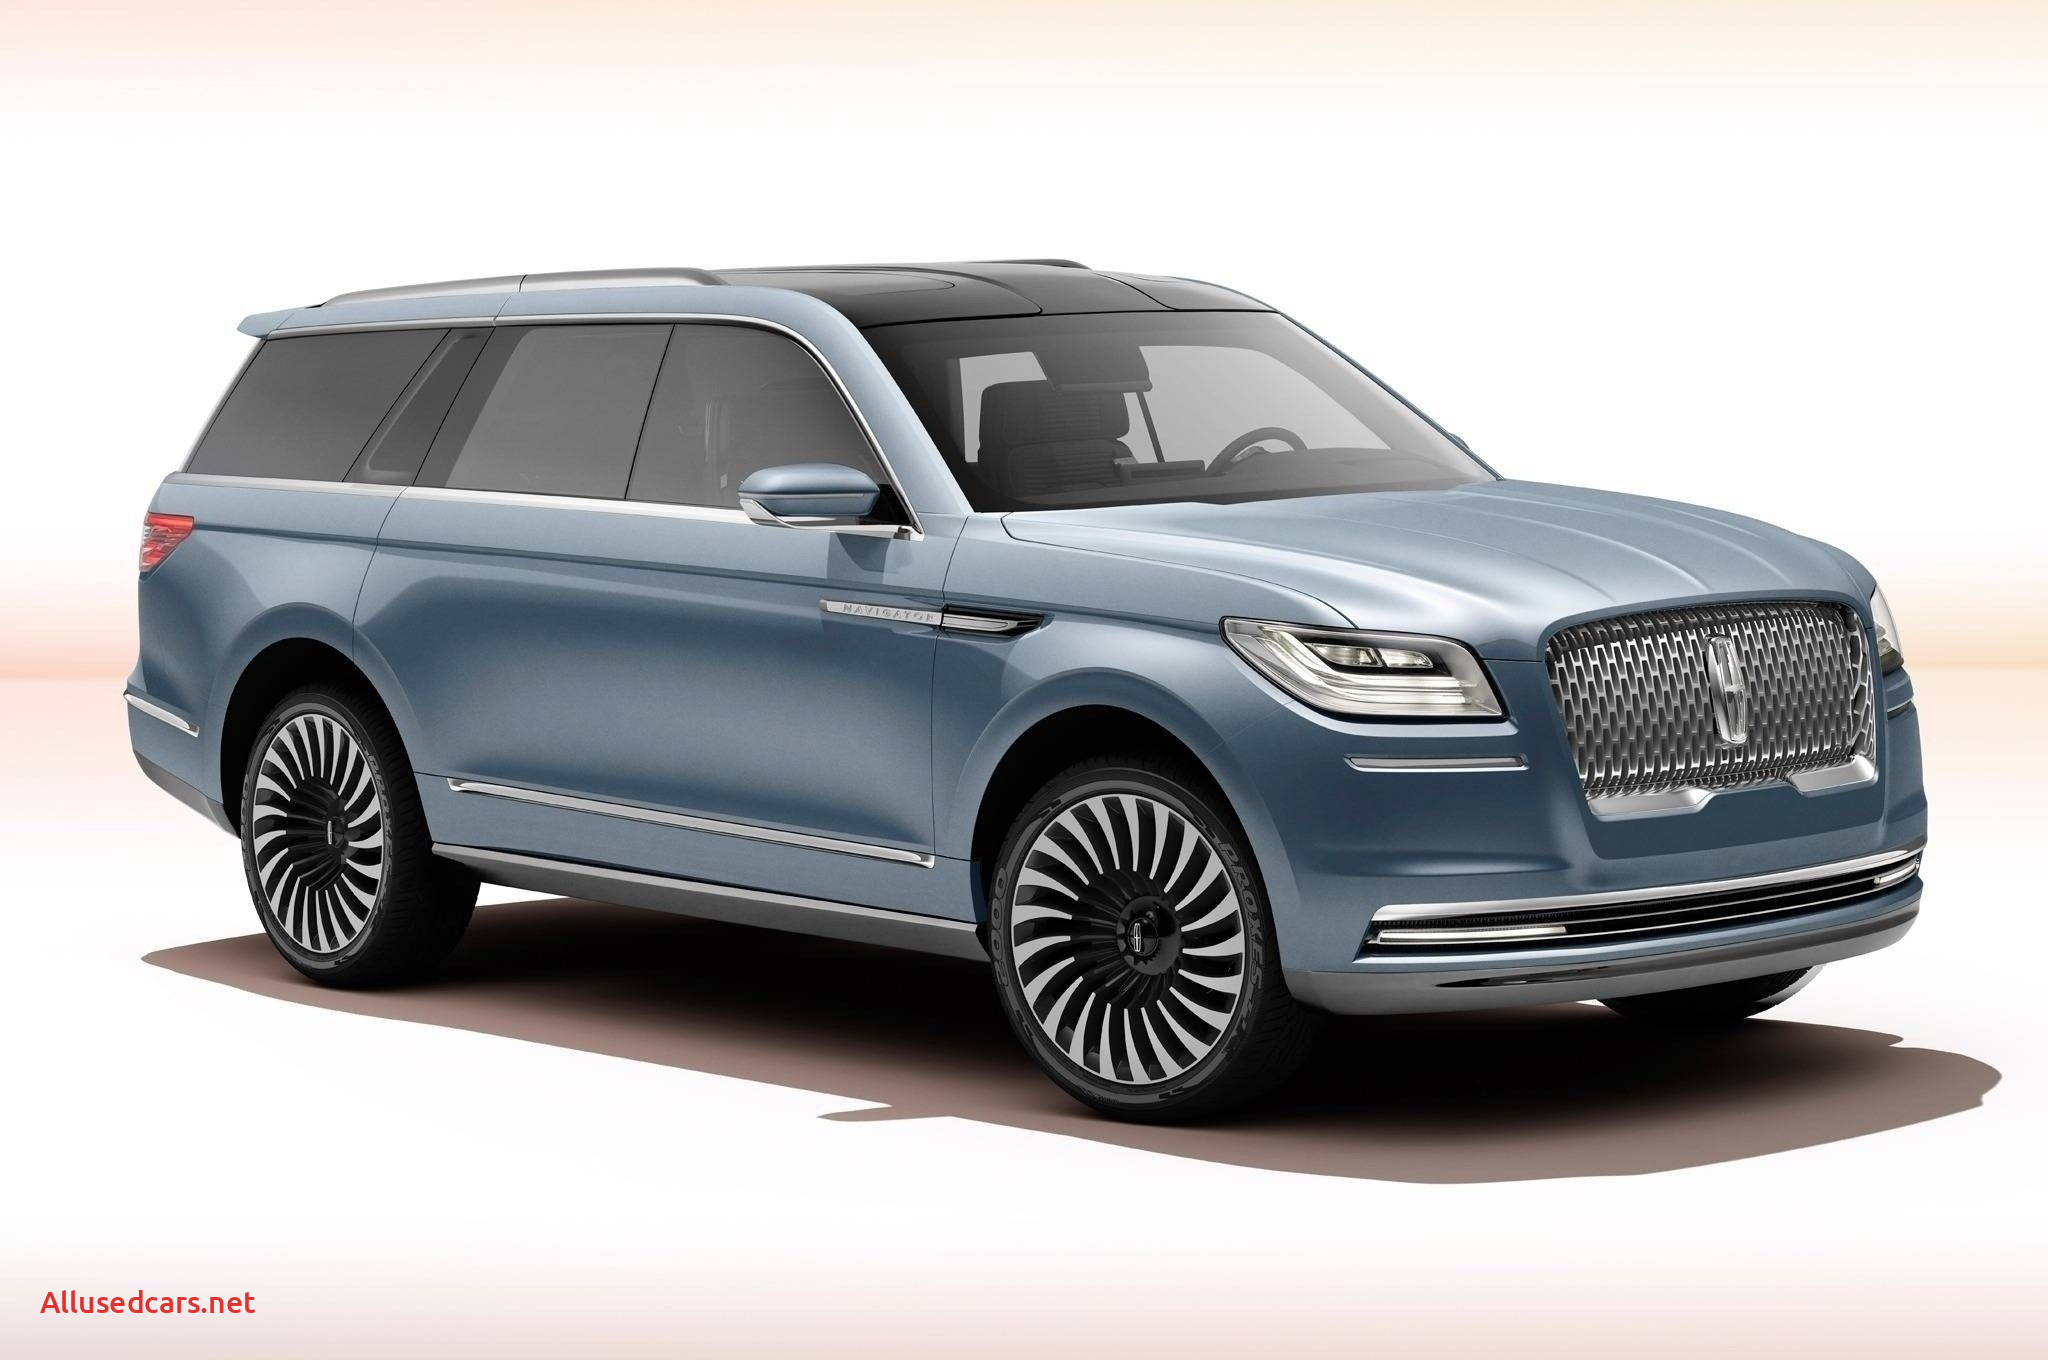 2017 Buick Enclave New Spy Shots 2019 Lincoln Mkz Sedan Concept Redesign and